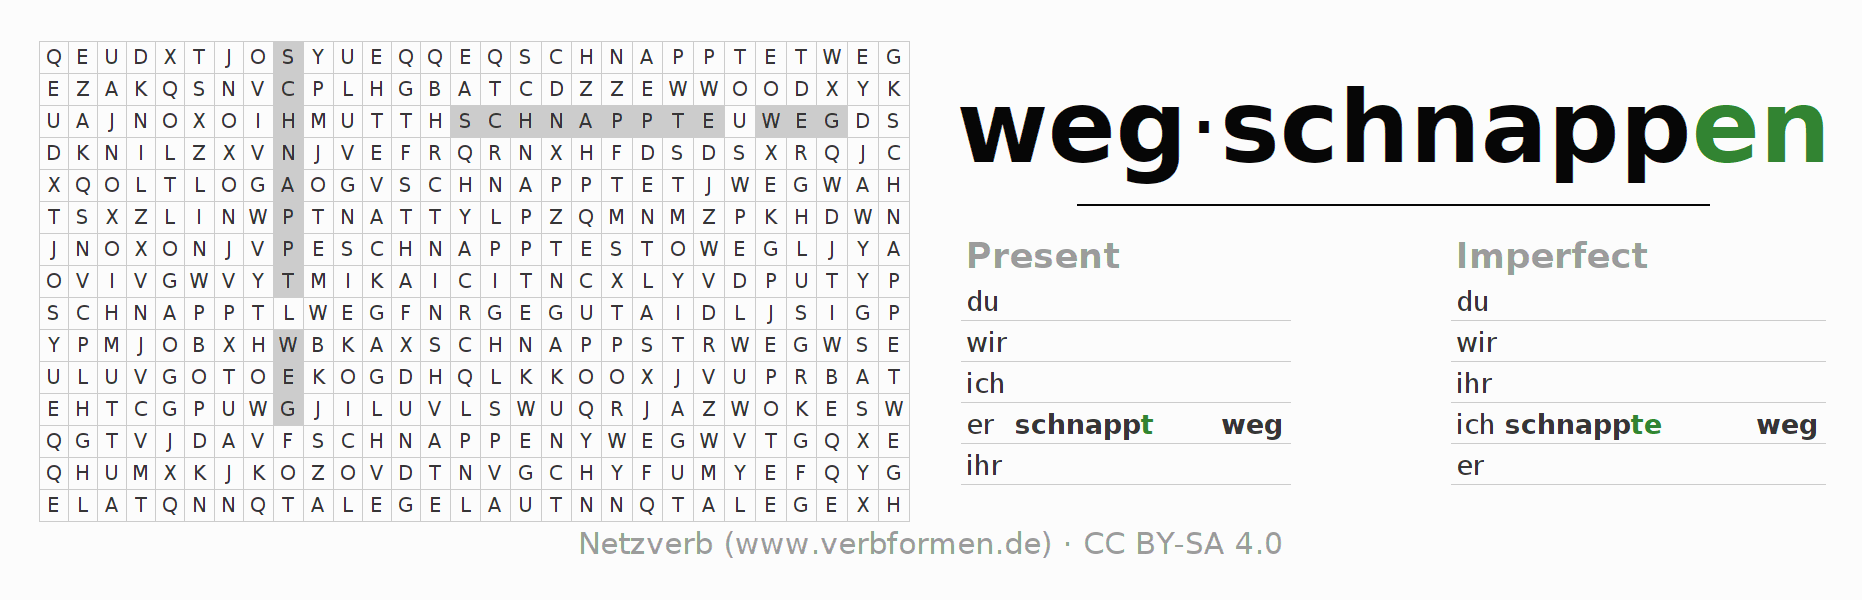 Word search puzzle for the conjugation of the verb wegschnappen